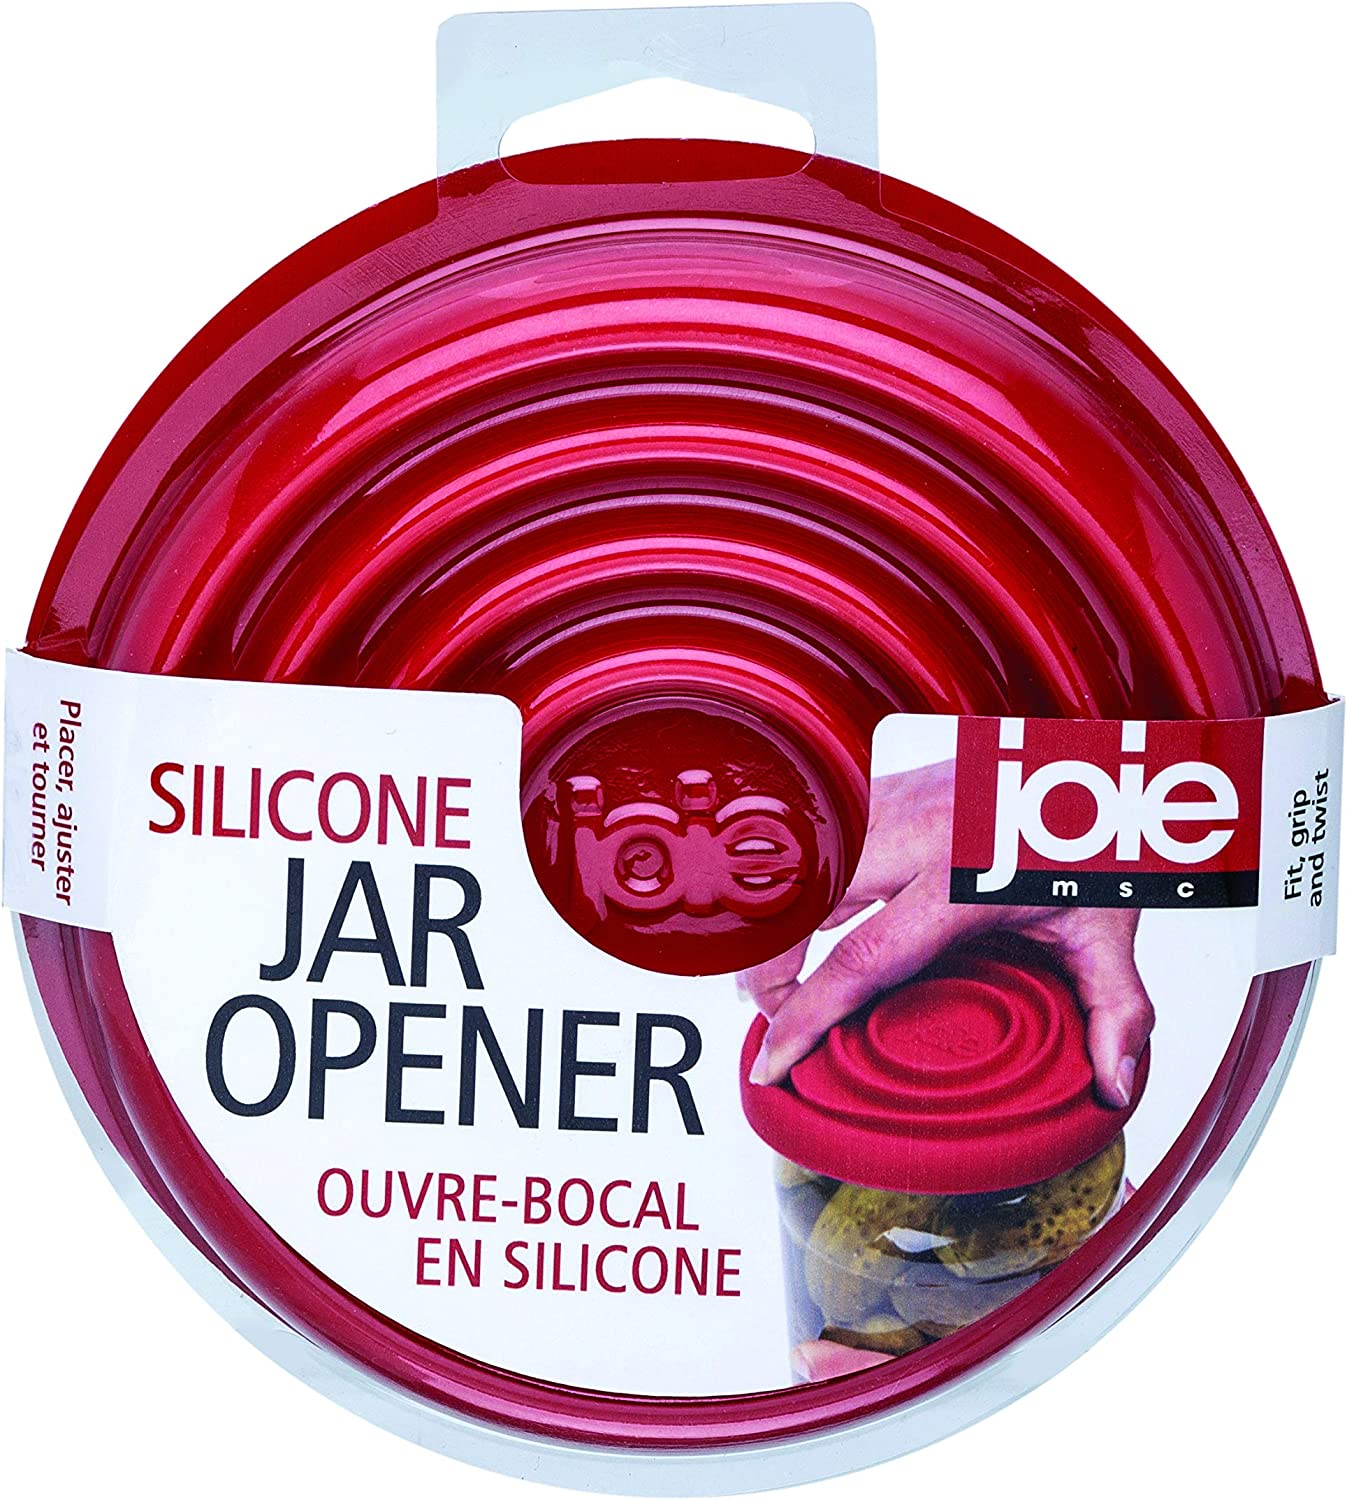 Joie Silicone Jar Opener - Very popular Purpose and Gripp Made SEAL limited product